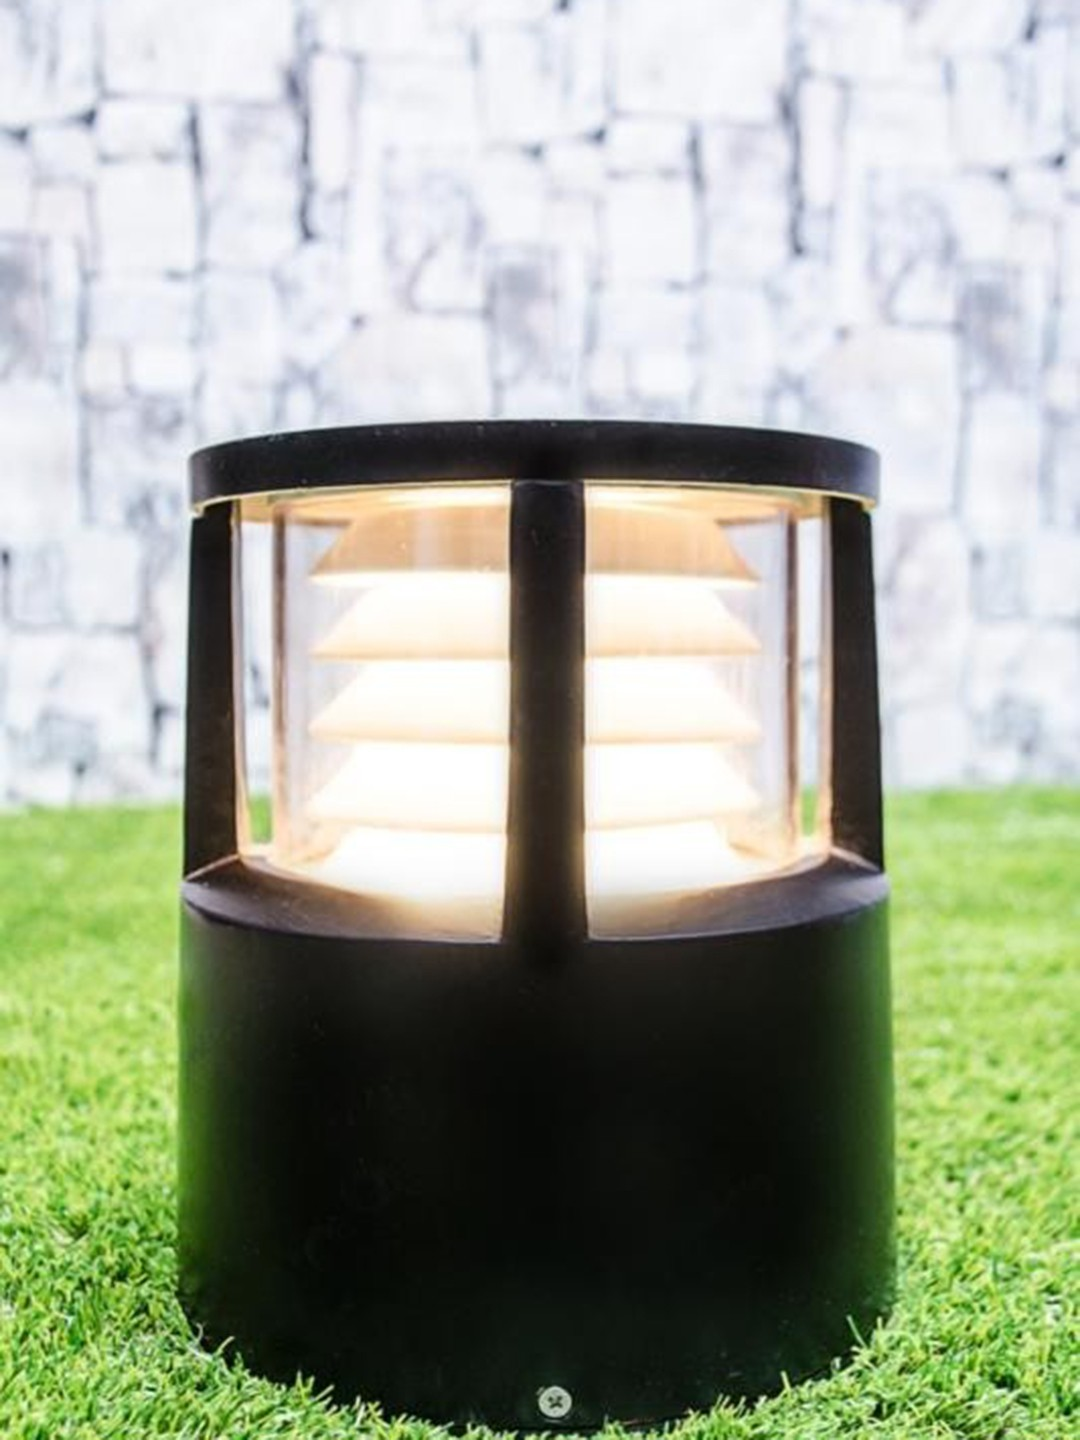 Aluminum casted Mini Bollard path light